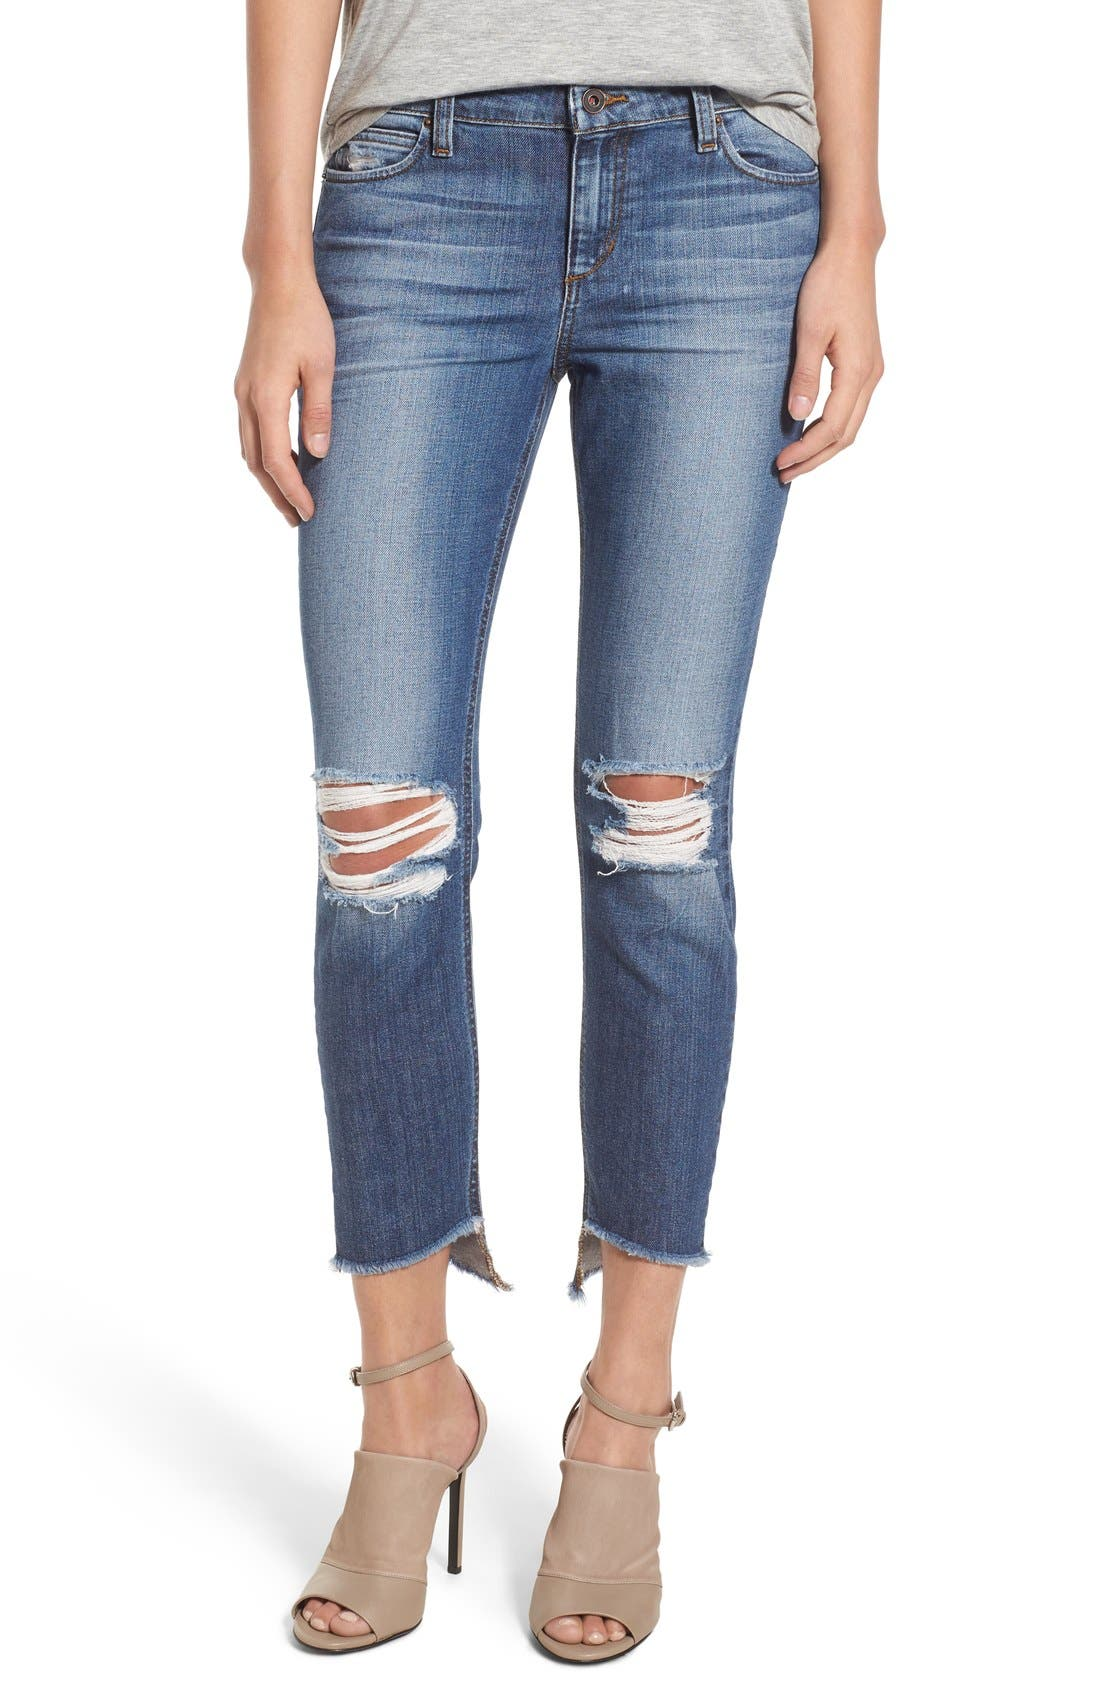 Alternate Image 1 Selected - Joe's 'Collector's - Blondie' Destroyed Ankle Skinny Jeans (Coppola)